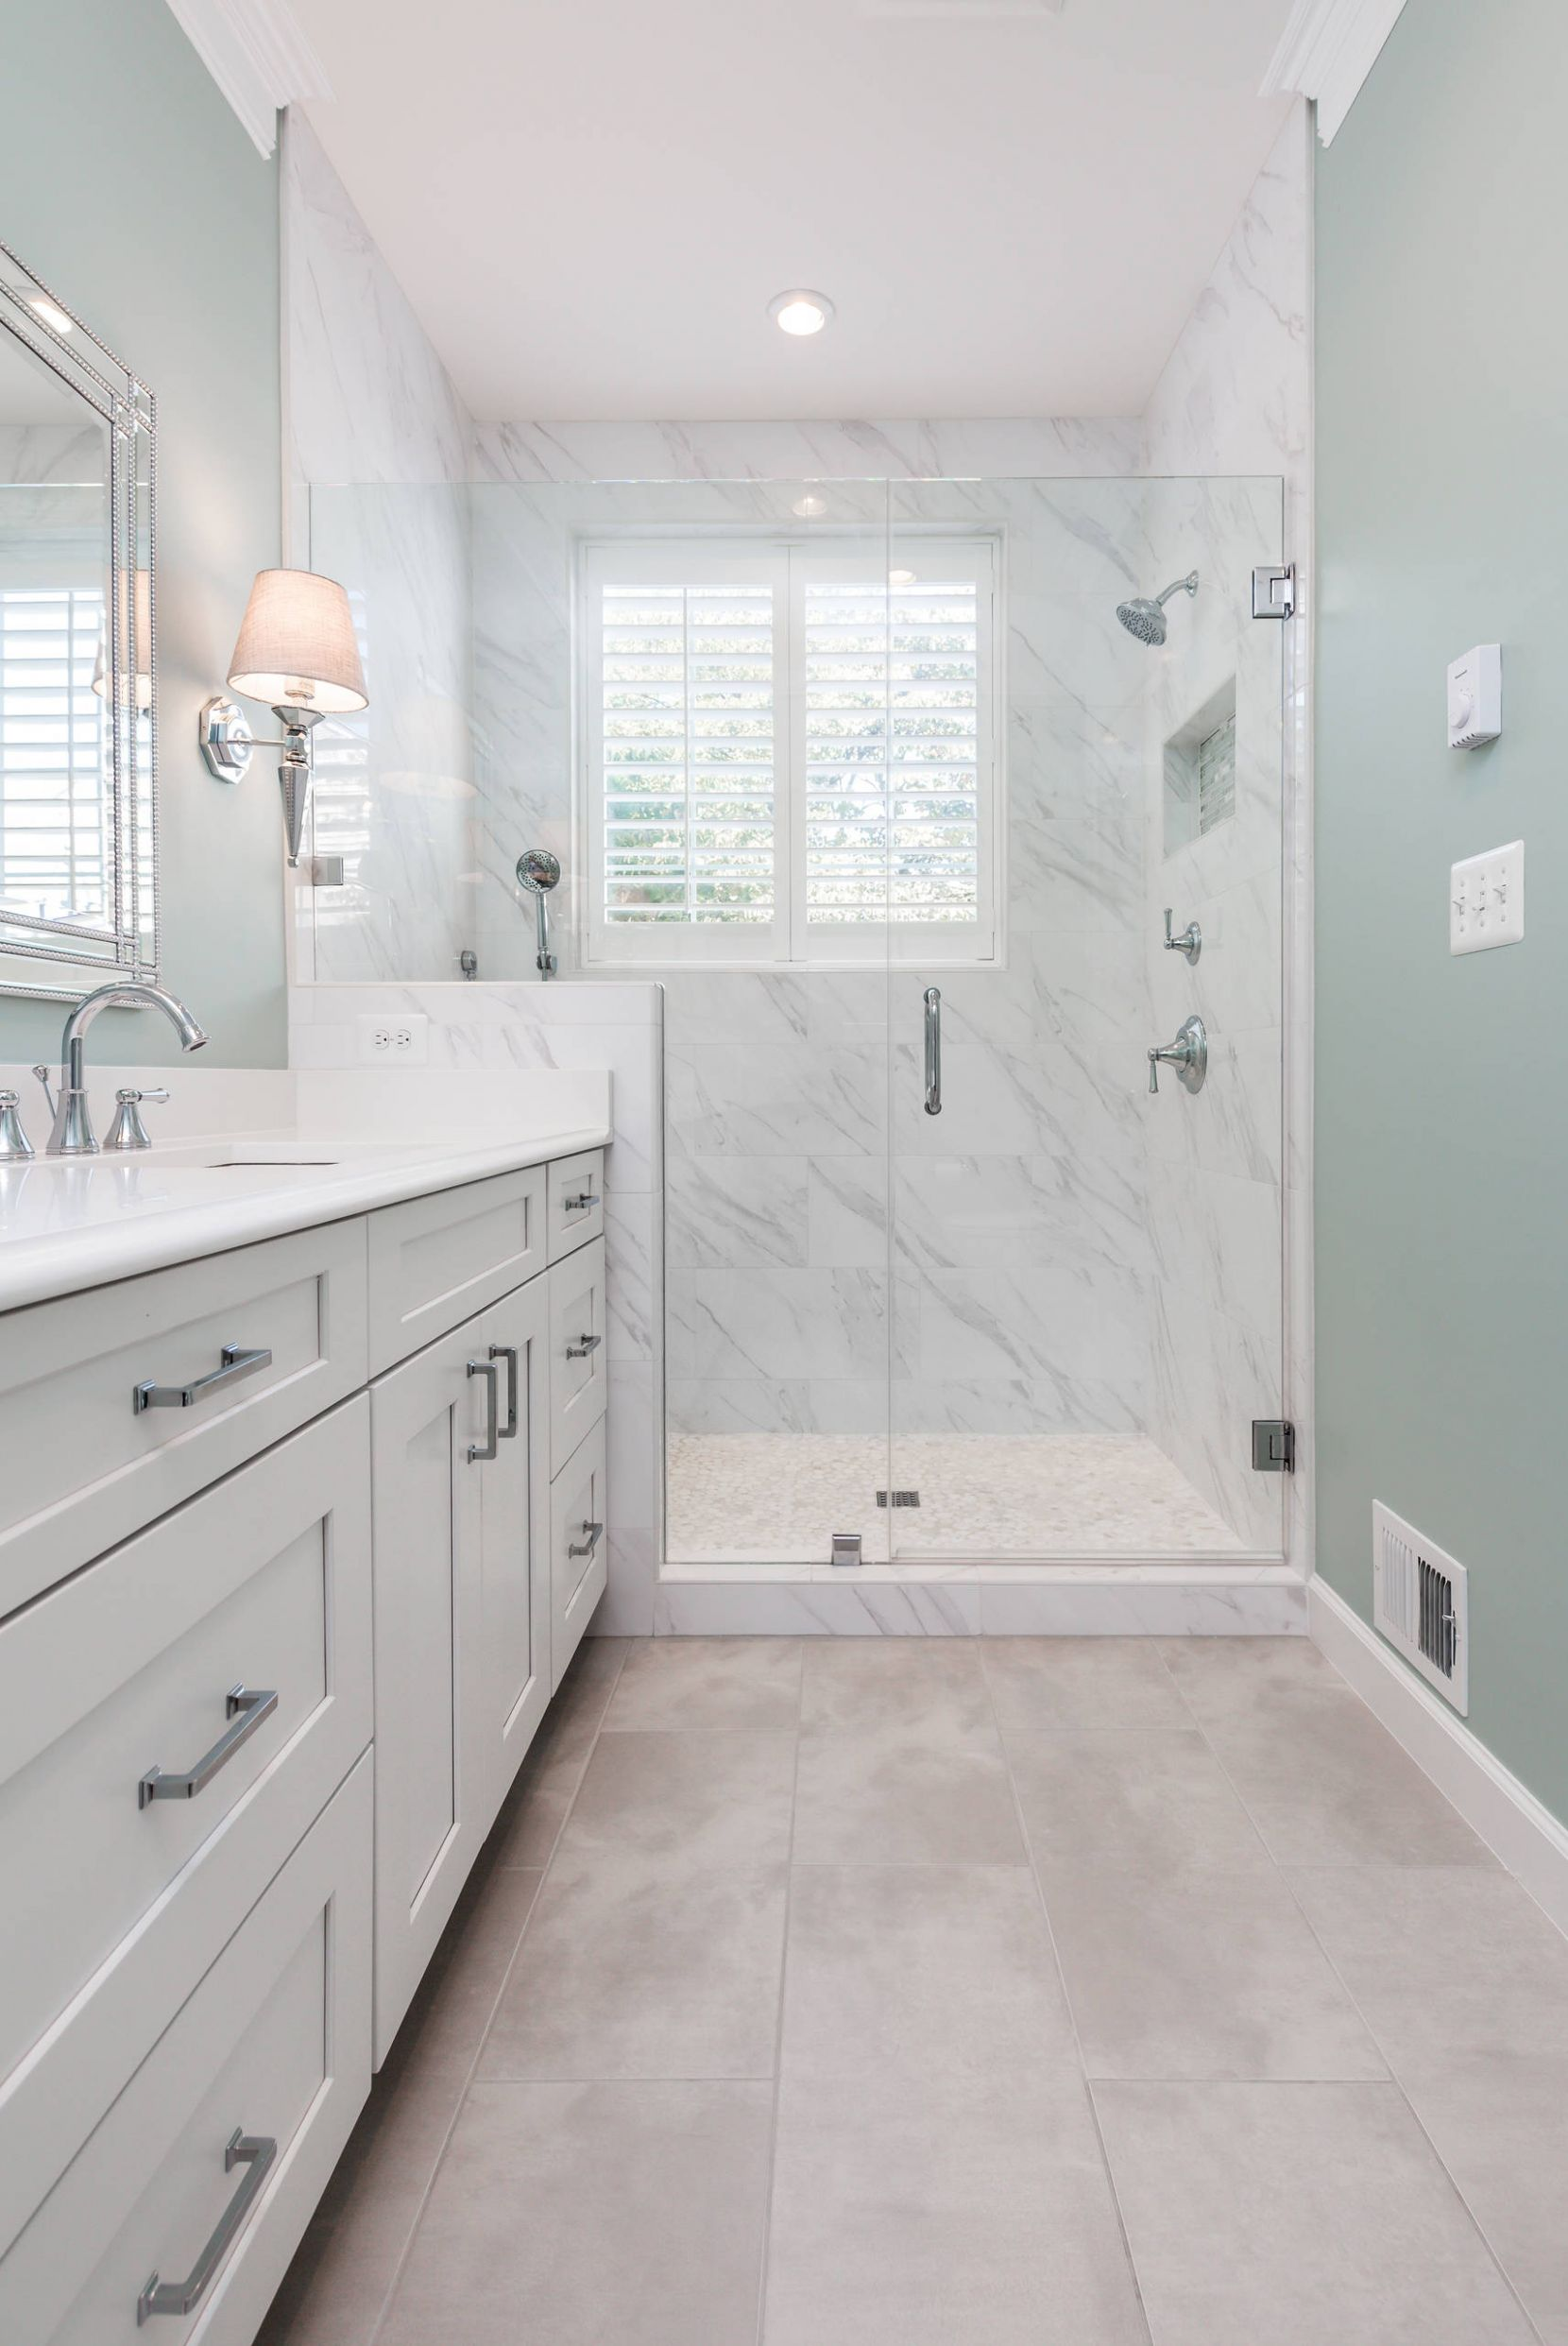 10 Beautiful Small Bathroom Pictures & Ideas | Houzz